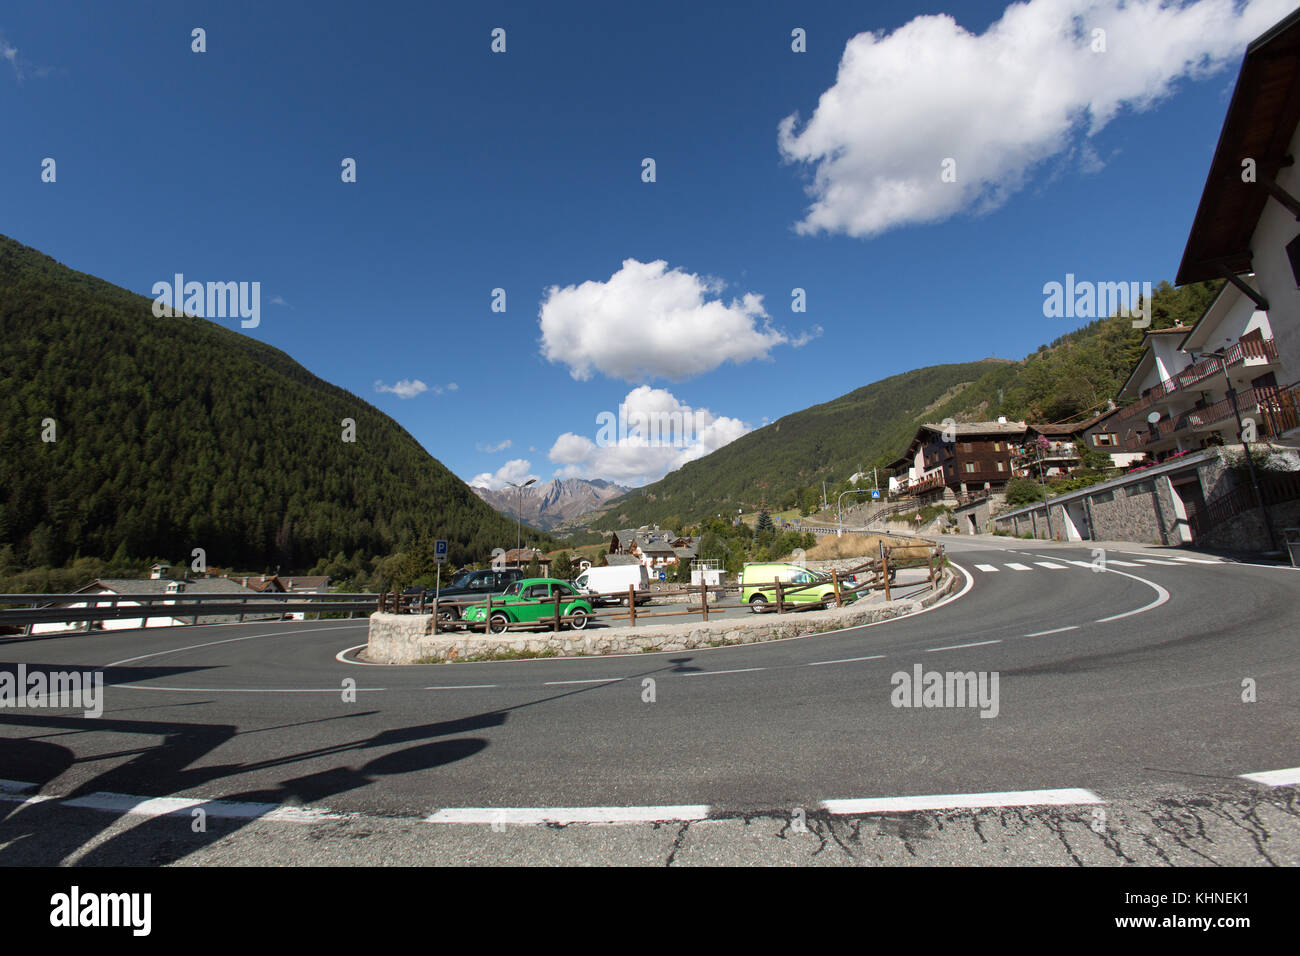 Town of Etroubles, Italy. Picturesque view of the town of Etroubles in Northern Italy. - Stock Image